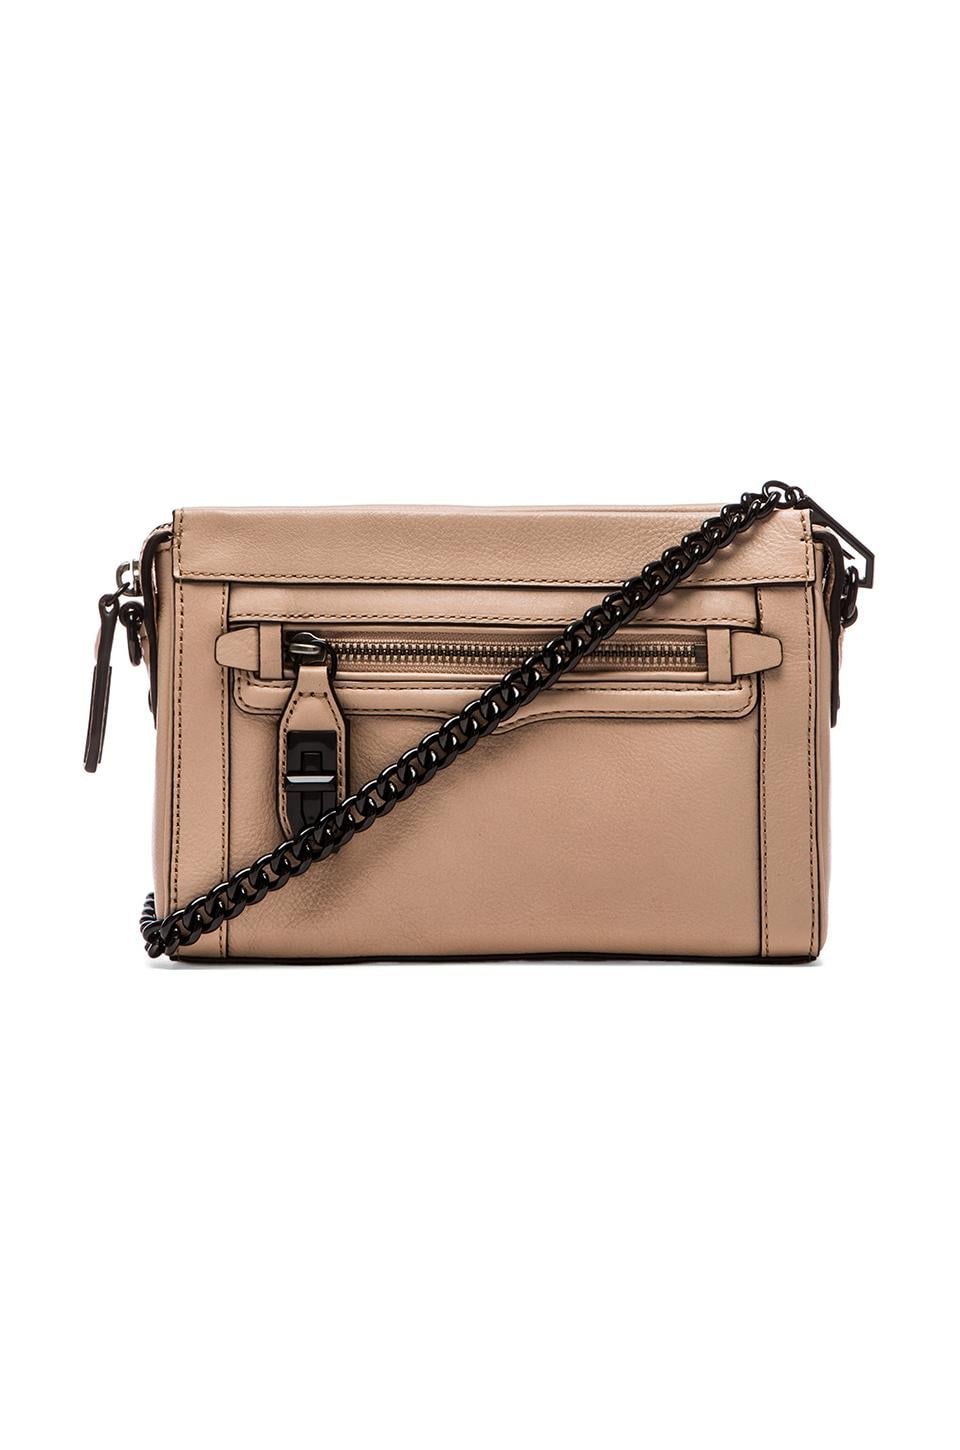 Rebecca Minkoff Mini Crosby Crossbody in Latte